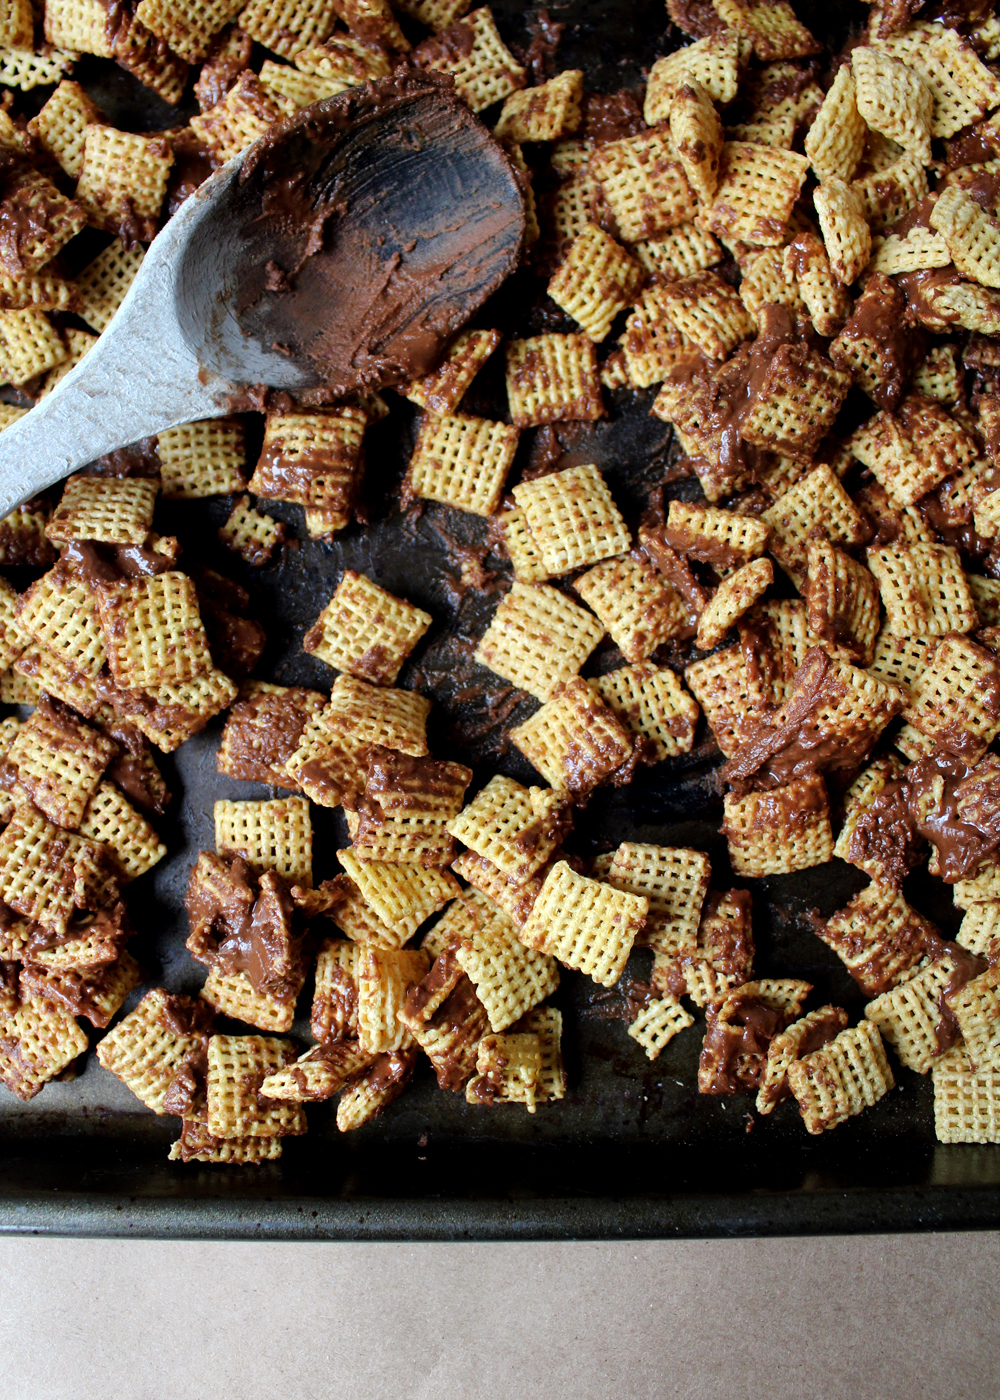 cover chex cereal with chocolate mixture